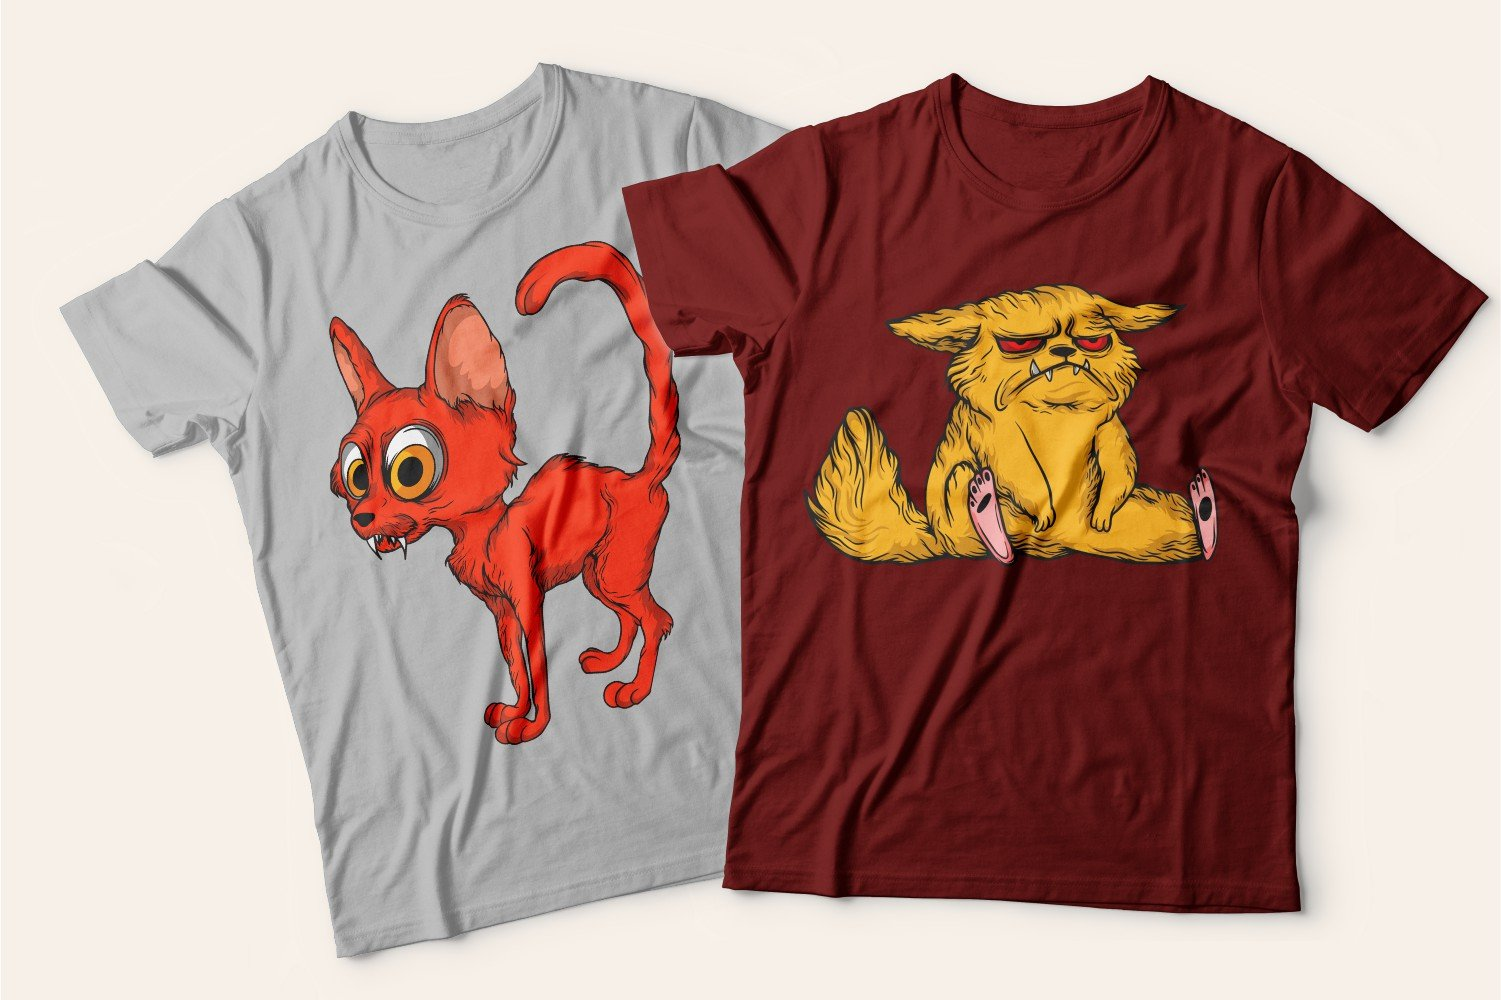 Two T-shirts with cats: one is gray with a thin scared cat, the other is burgundy with a lazy and tired red cat.